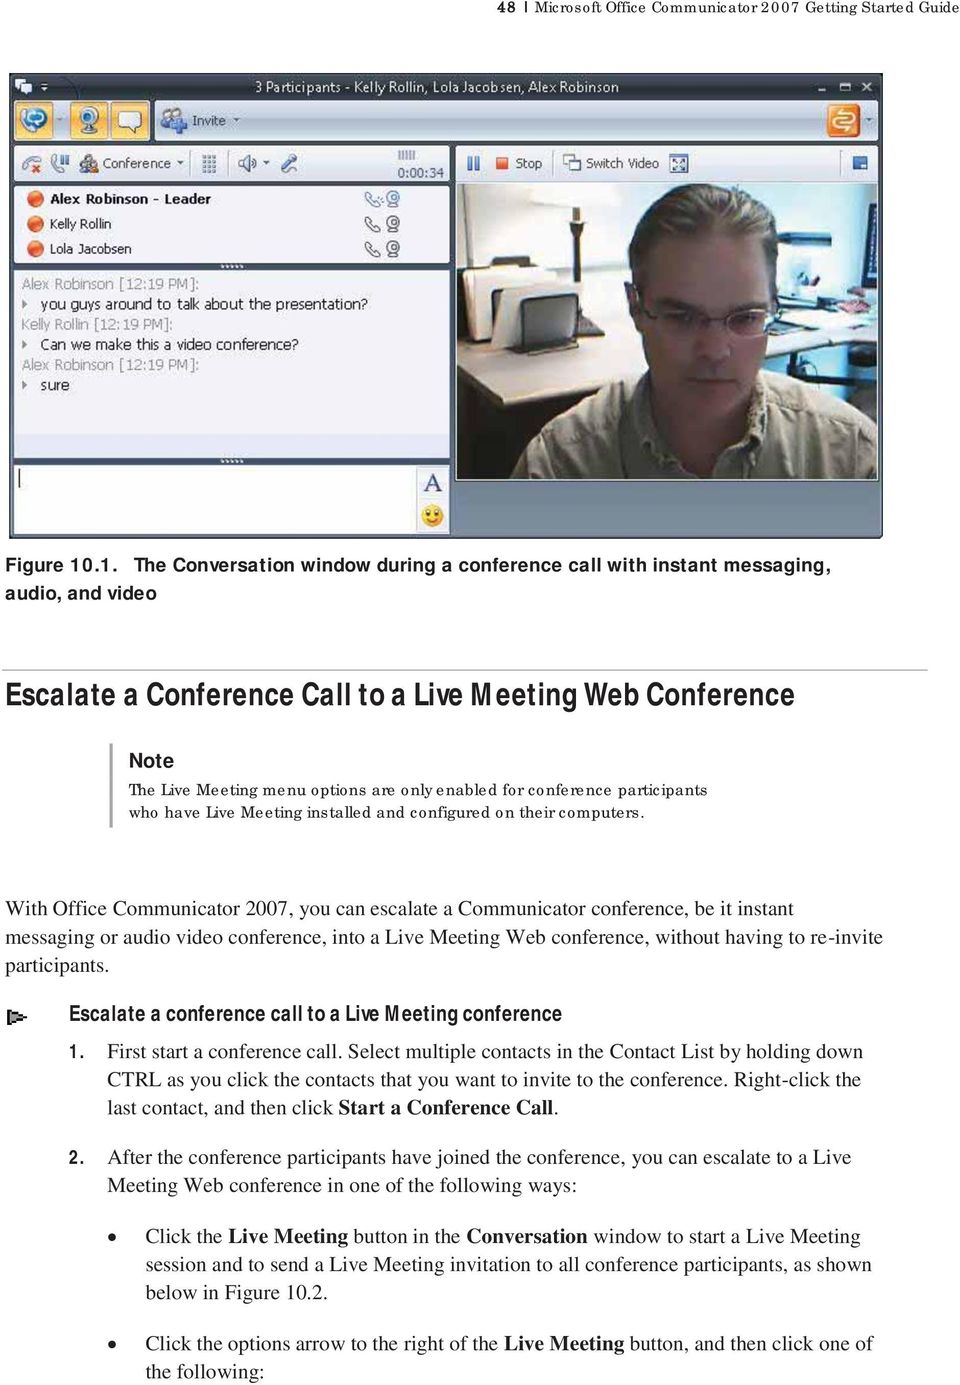 enabled for conference participants who have Live Meeting installed and configured on their computers.